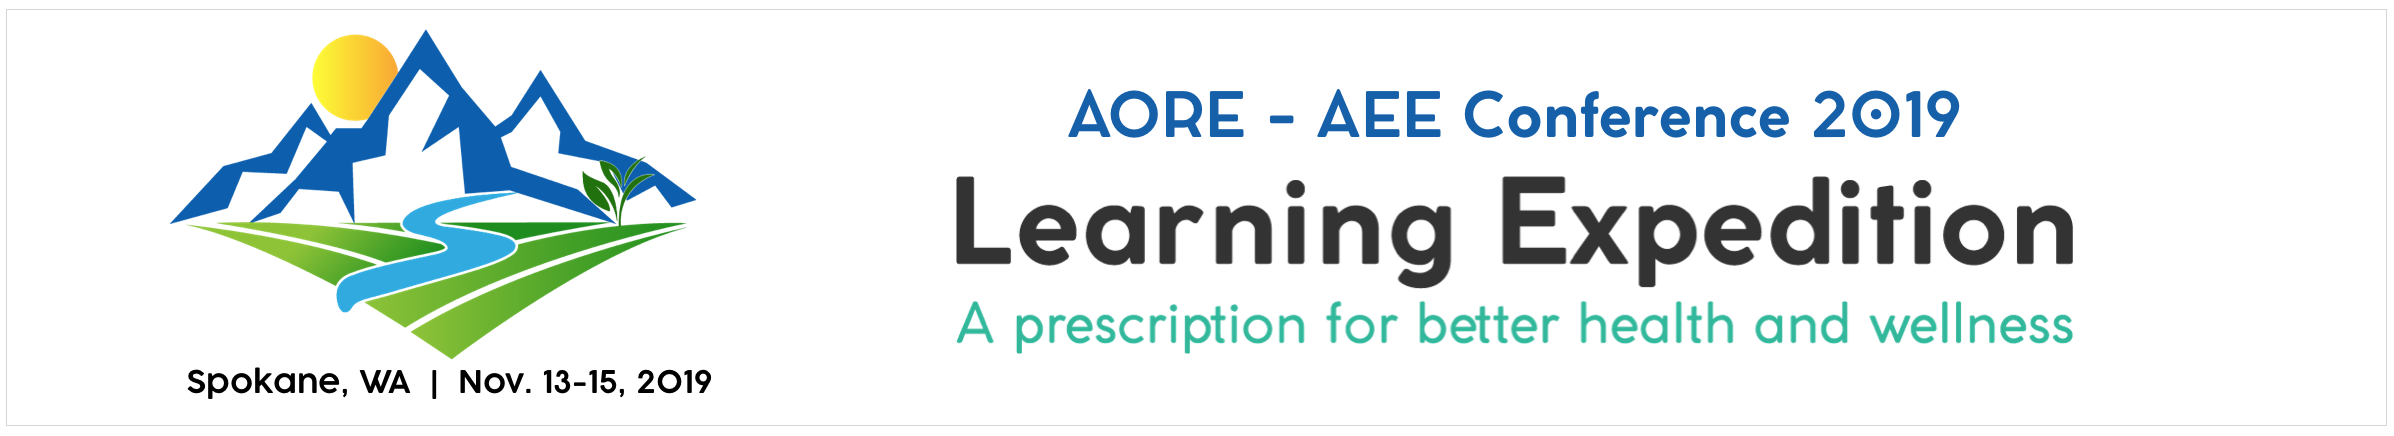 AORE - AEE Conference 2019 | Learning Expedition: A prescription for better health and wellness